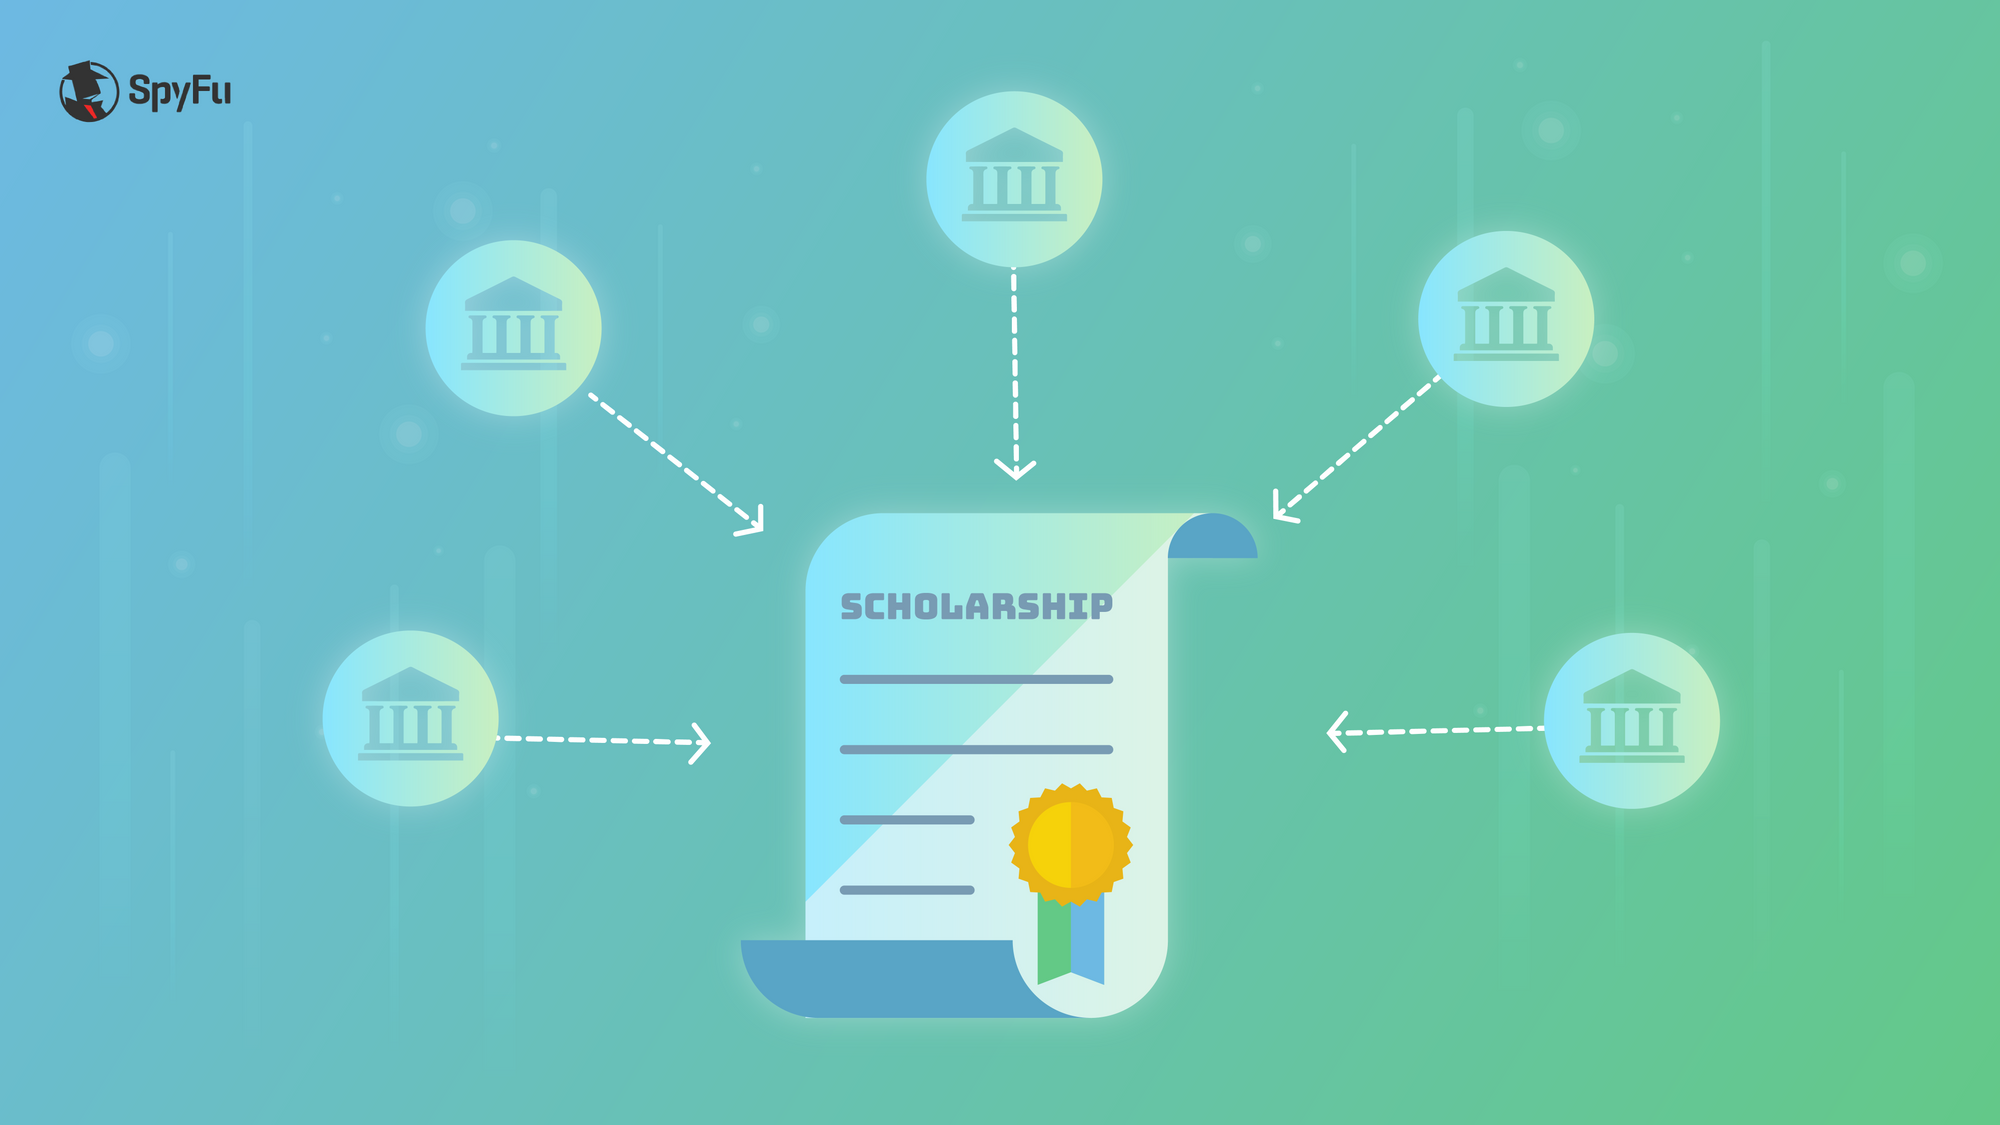 Scholarship Link Building in 2019: Does it Still Work?